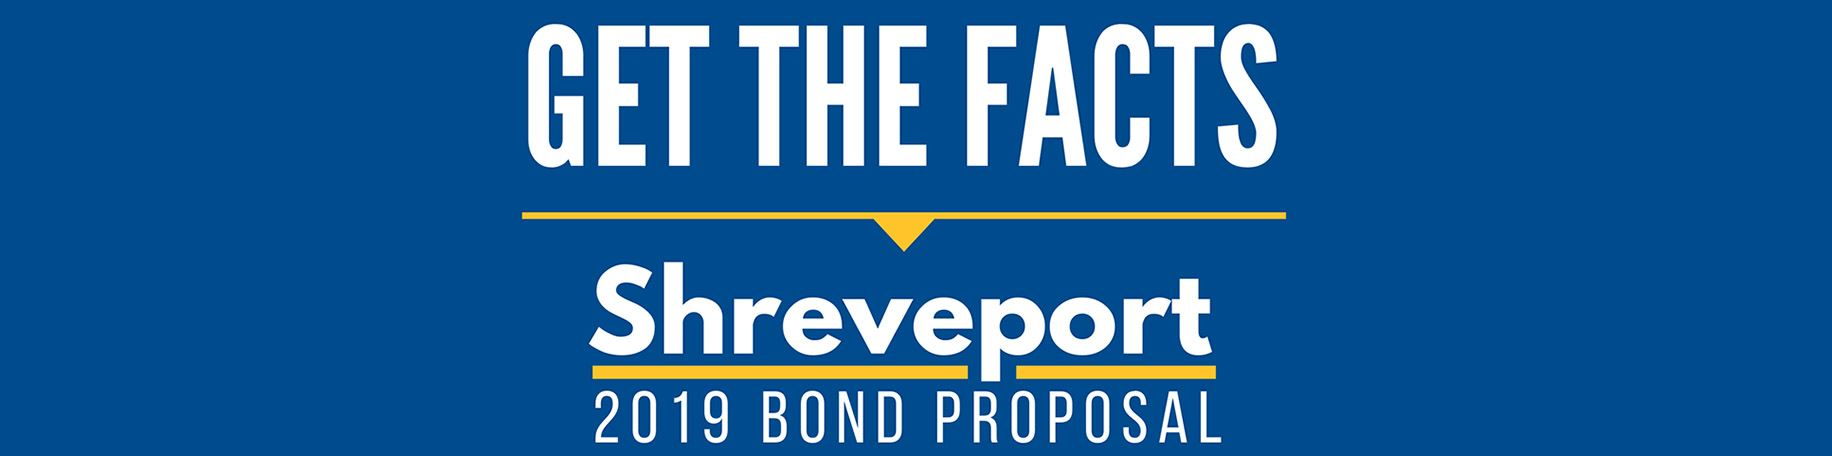 2019 Bond - Get The Facts